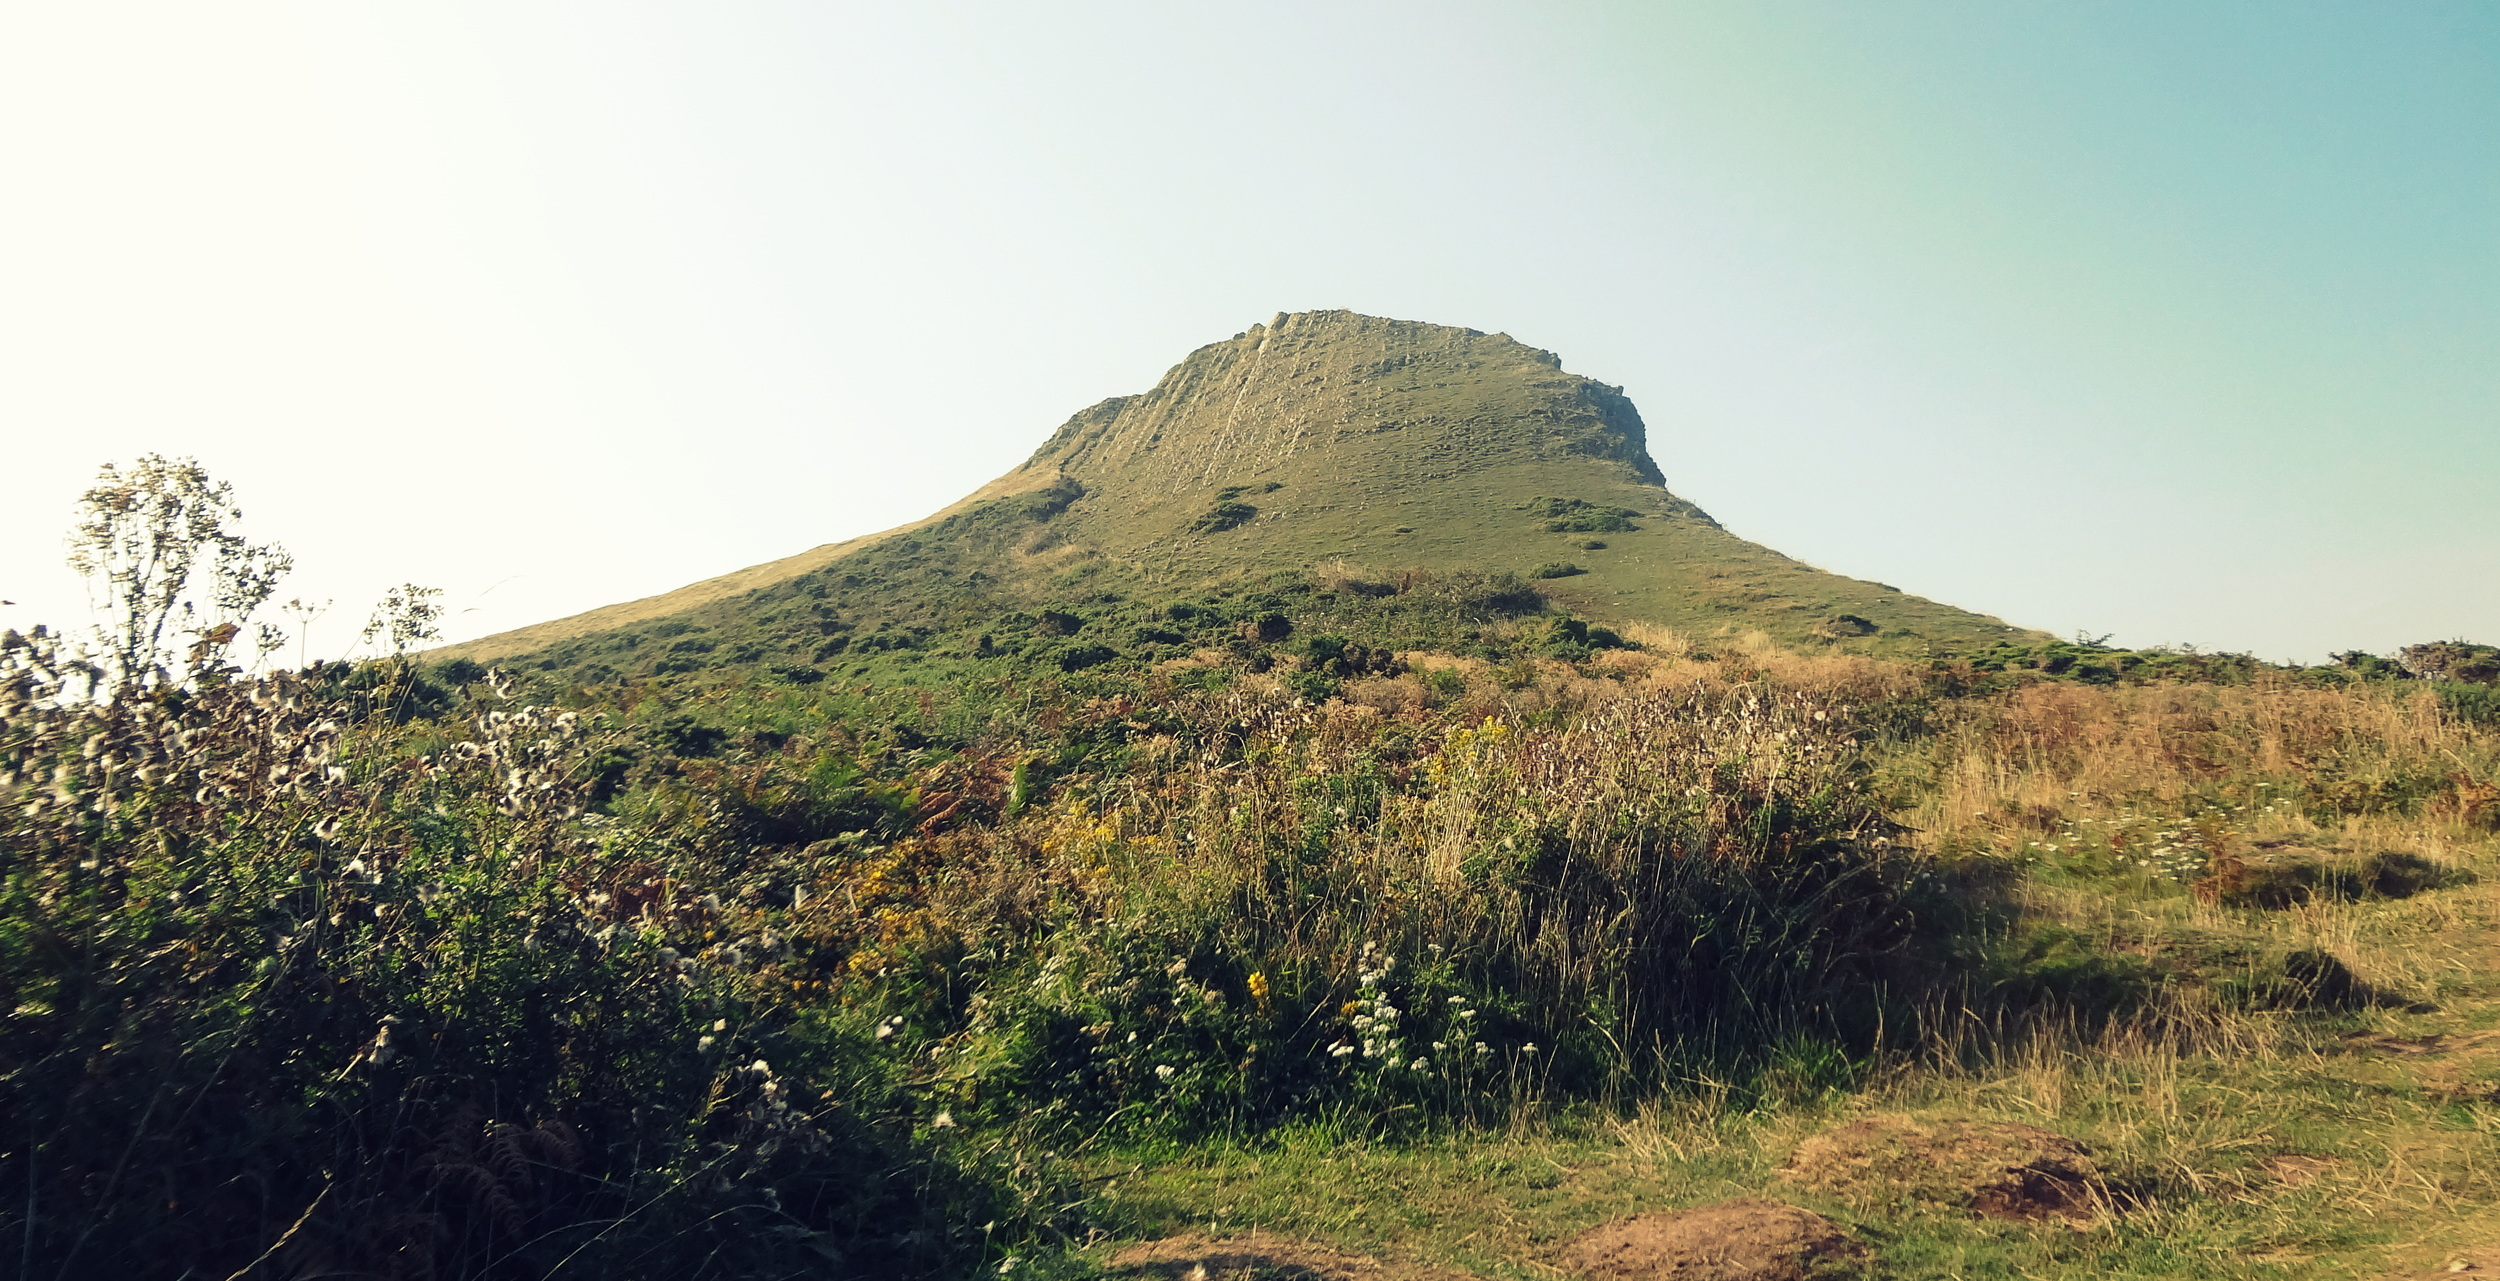 The foot of the hill on the island, which I then proceeded to run up :D